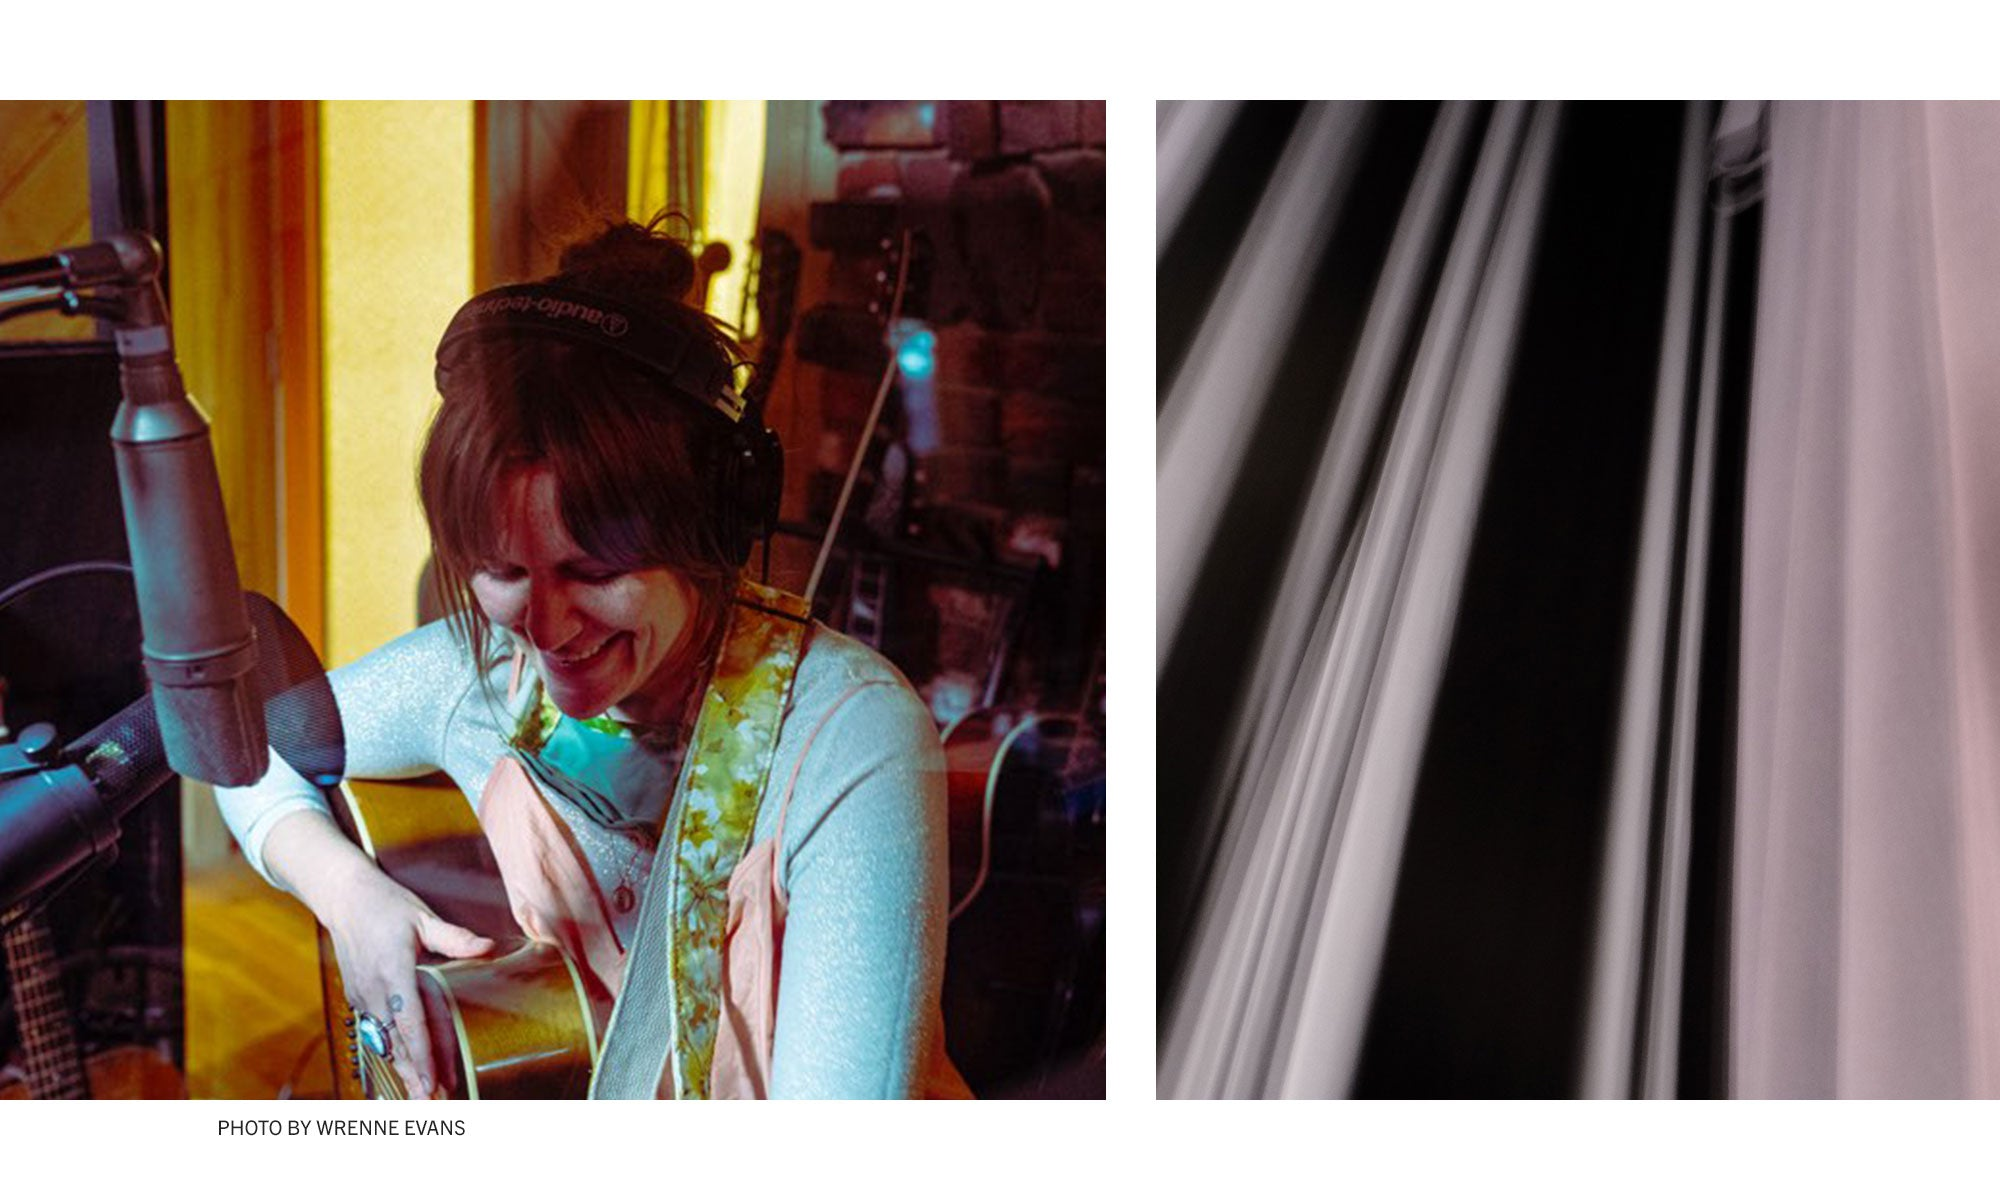 Photo of Singer / Songwriter Erin Rae recording in the studio, photographed by Wrenne Evans